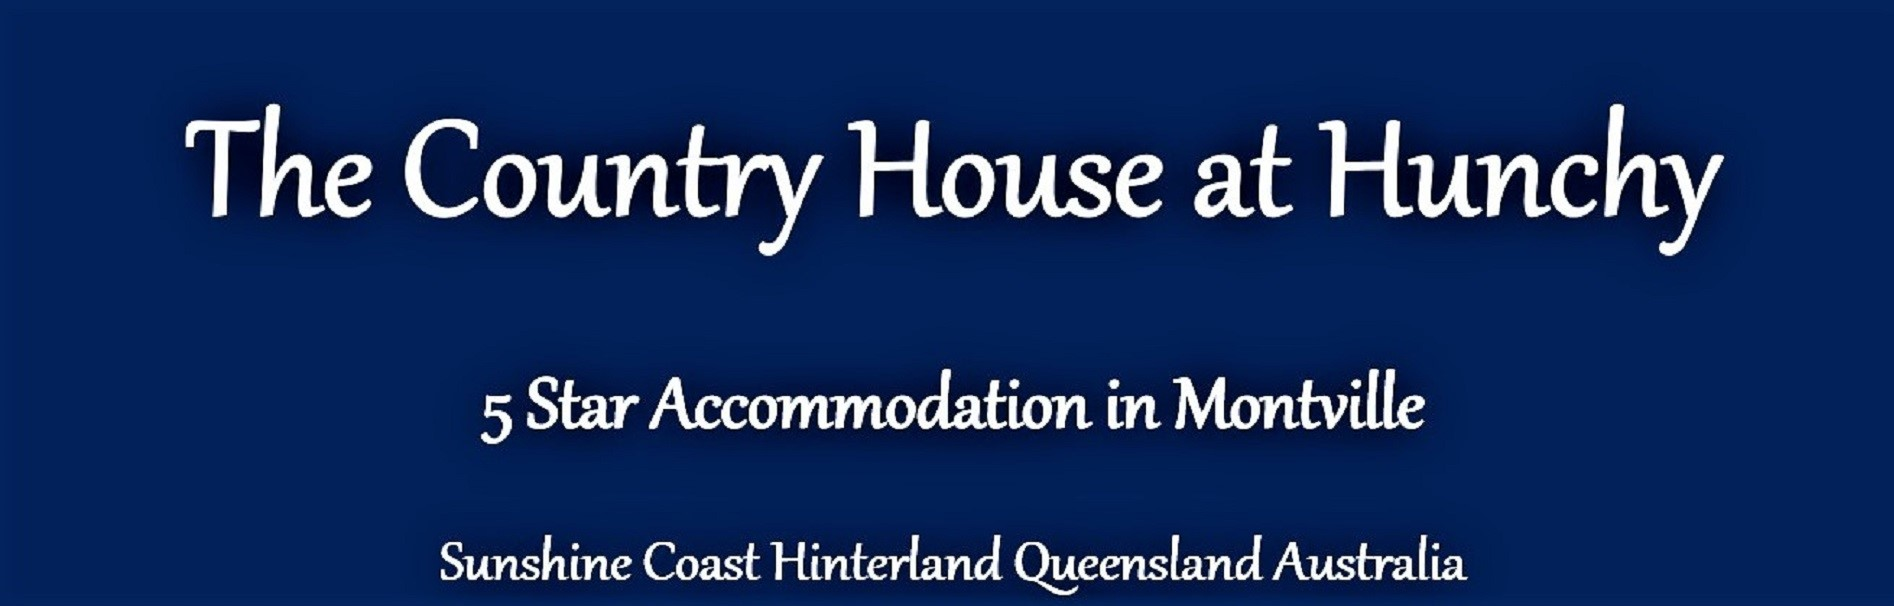 The Country House at Hunchy Montville, Sunshine Coast Hinterland